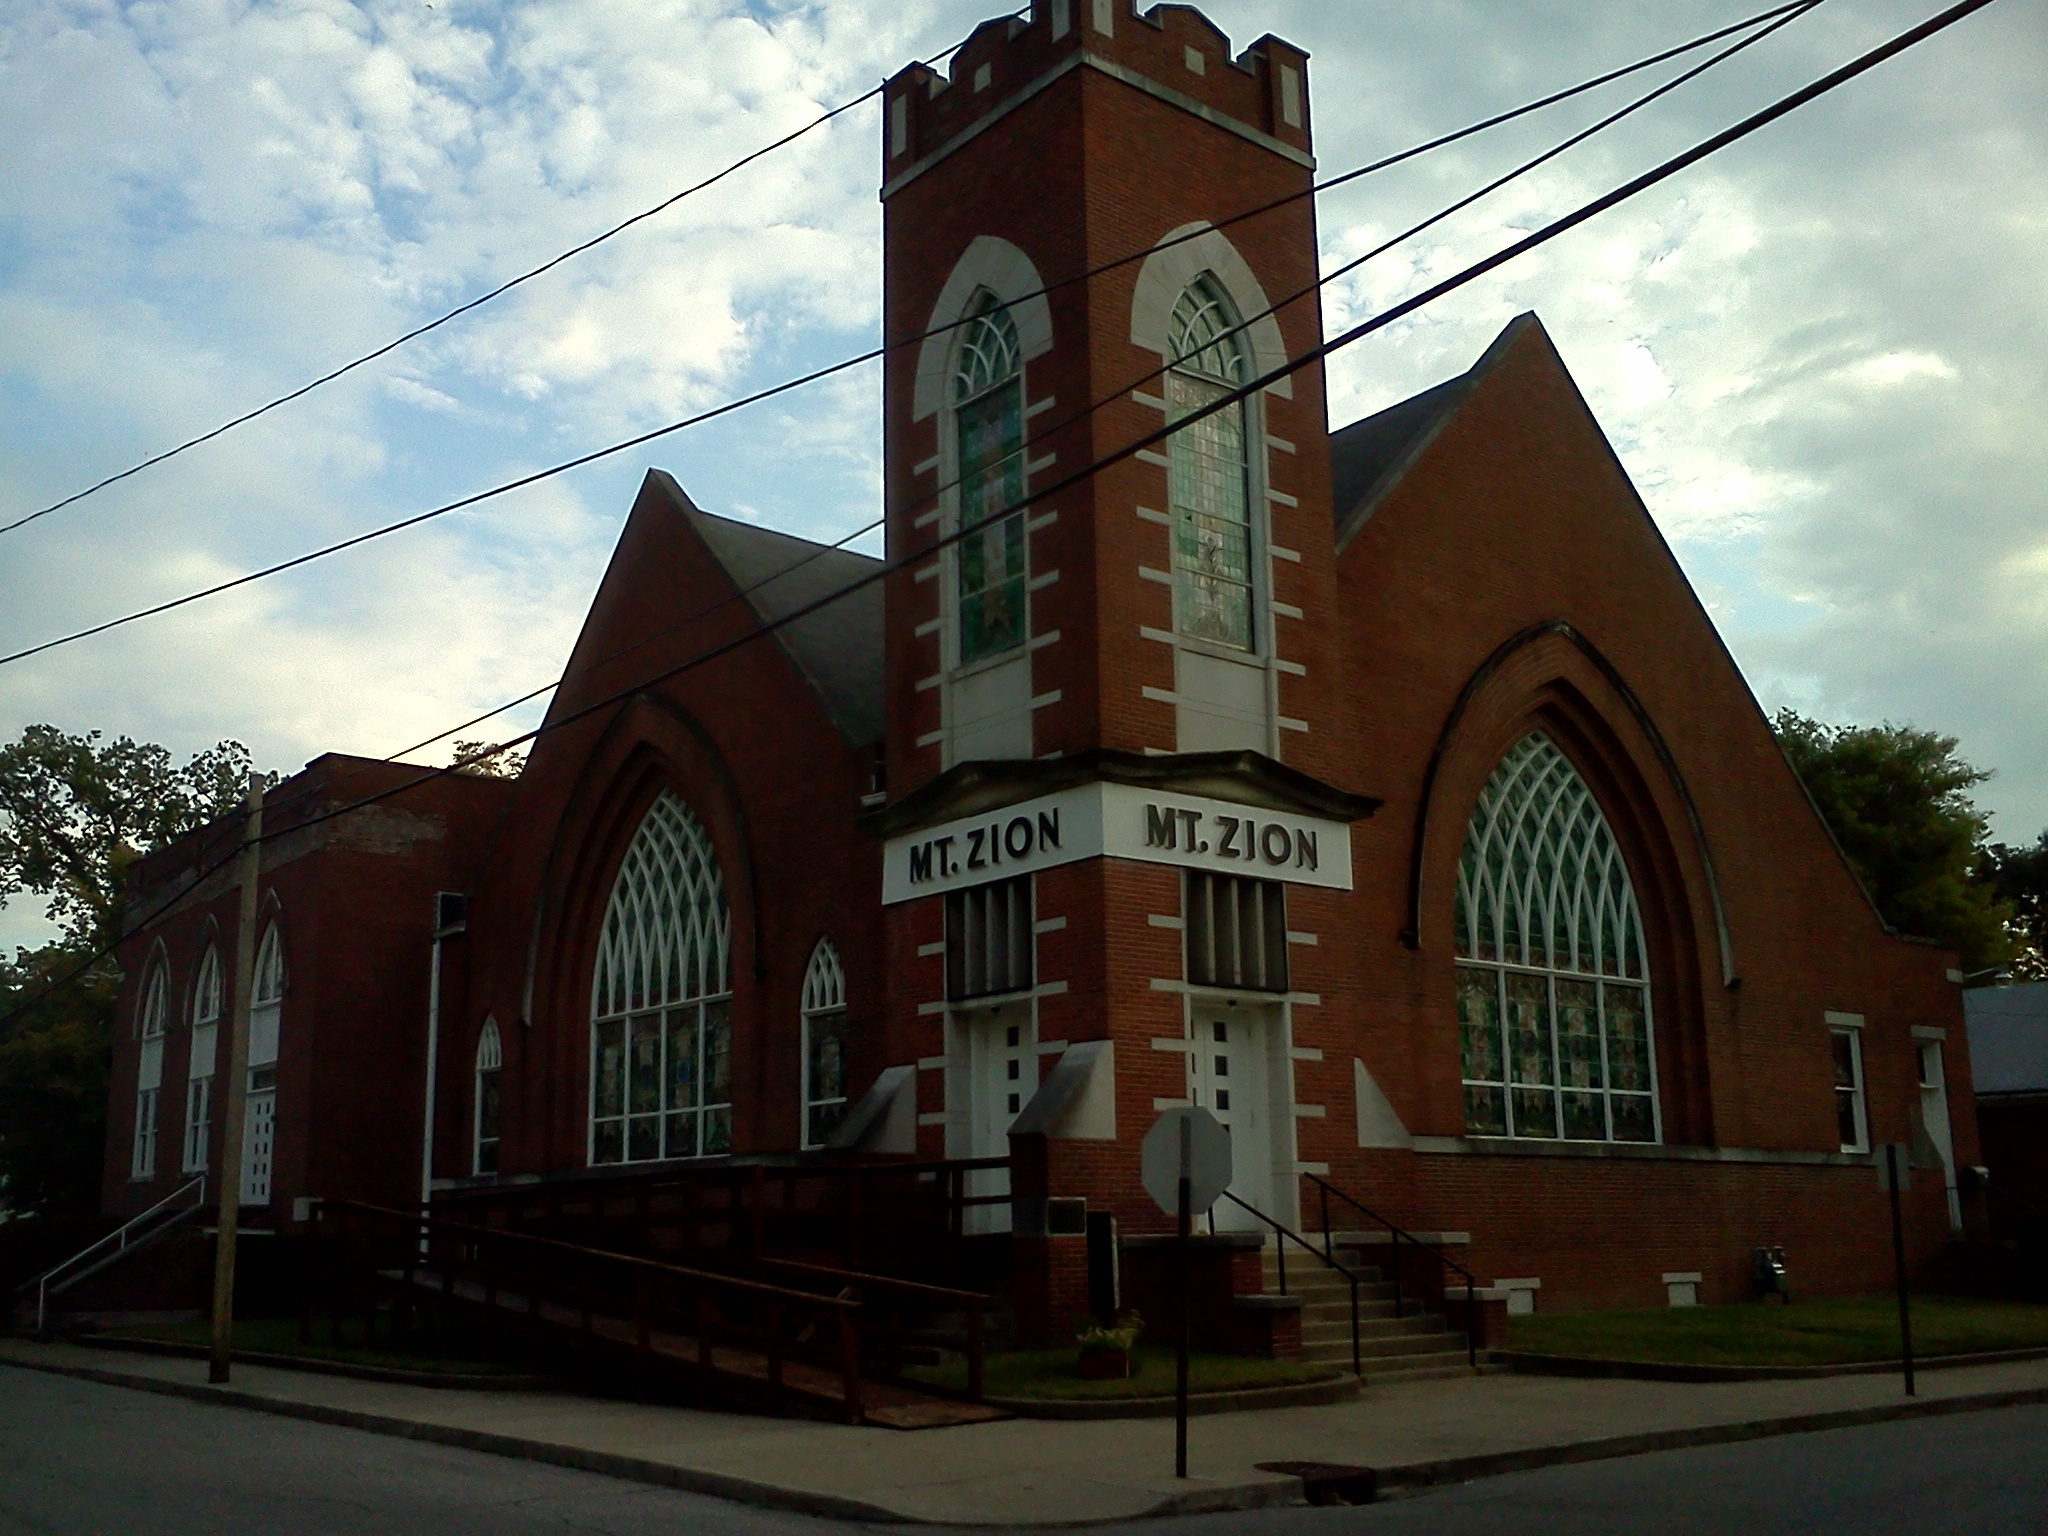 Bayard Park Methodist